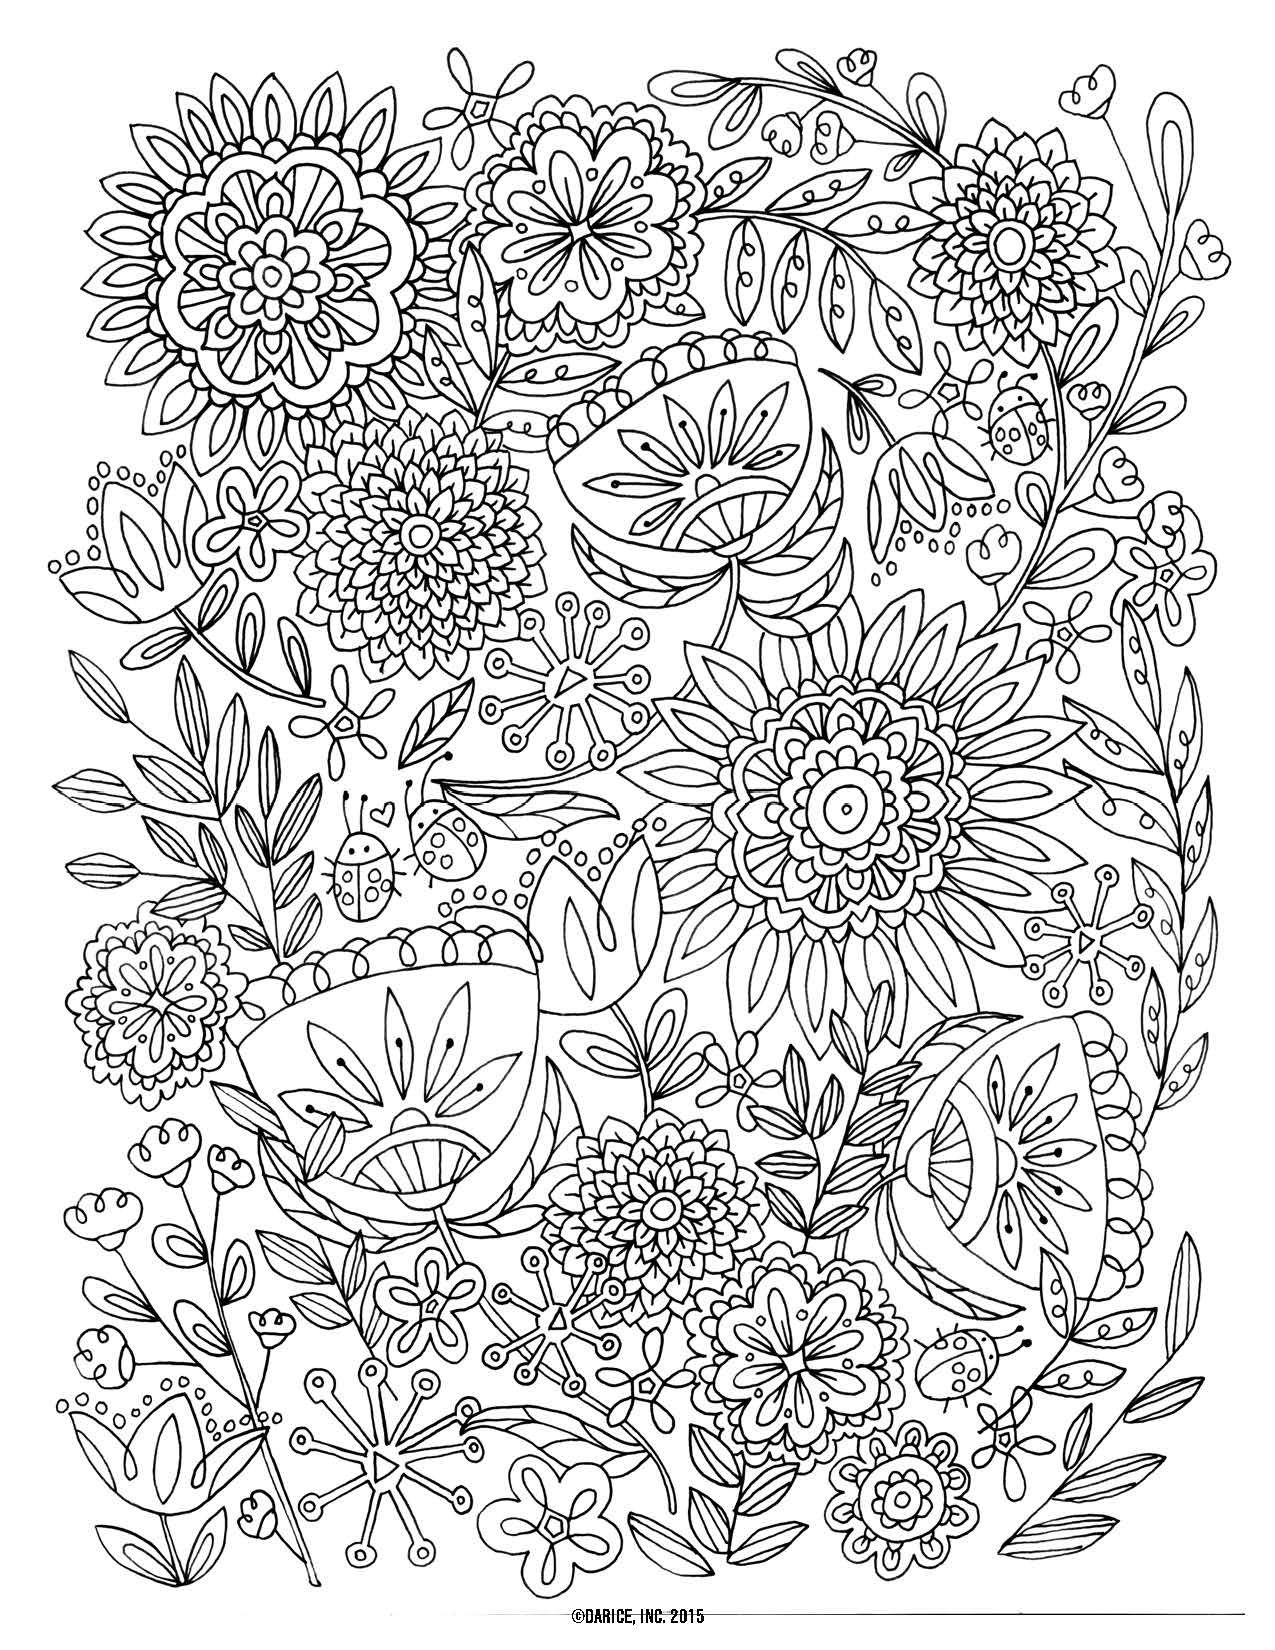 Free coloring pages online for free - Free Coloring Pages Printables